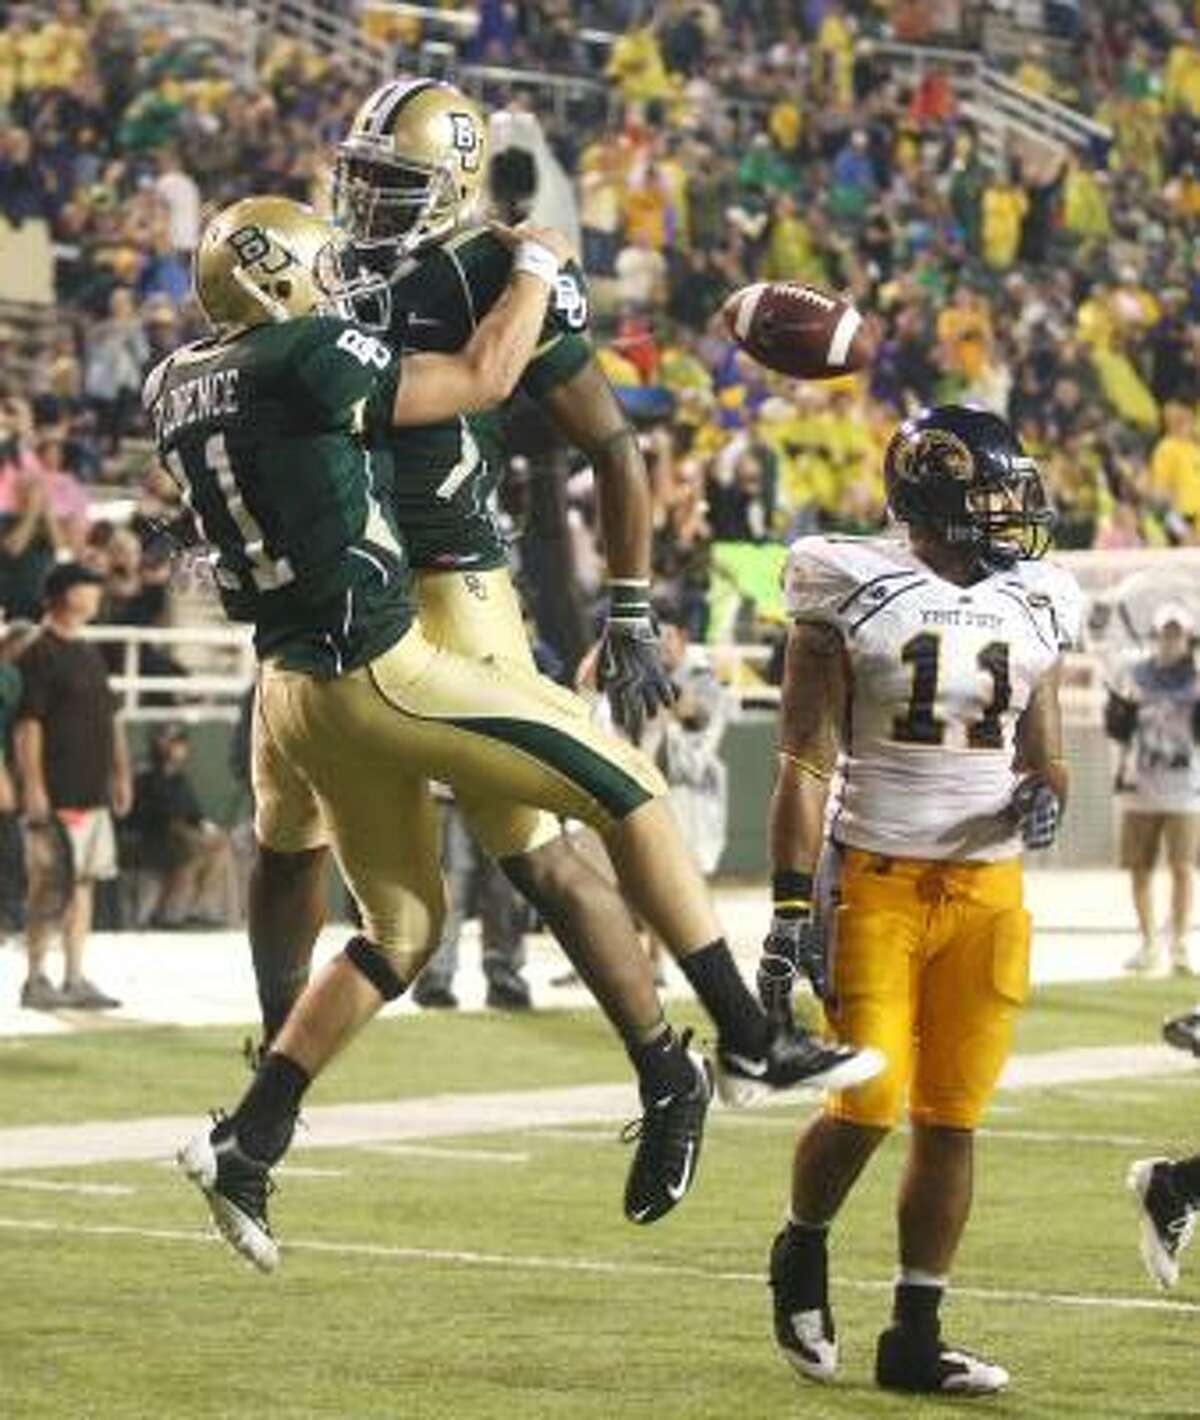 Baylor quarterback Nick Florence, left, celebrates his third-quarter touchdown with teammate Brad Taylor in front of Kent State defender Cobrani Mixon, right.